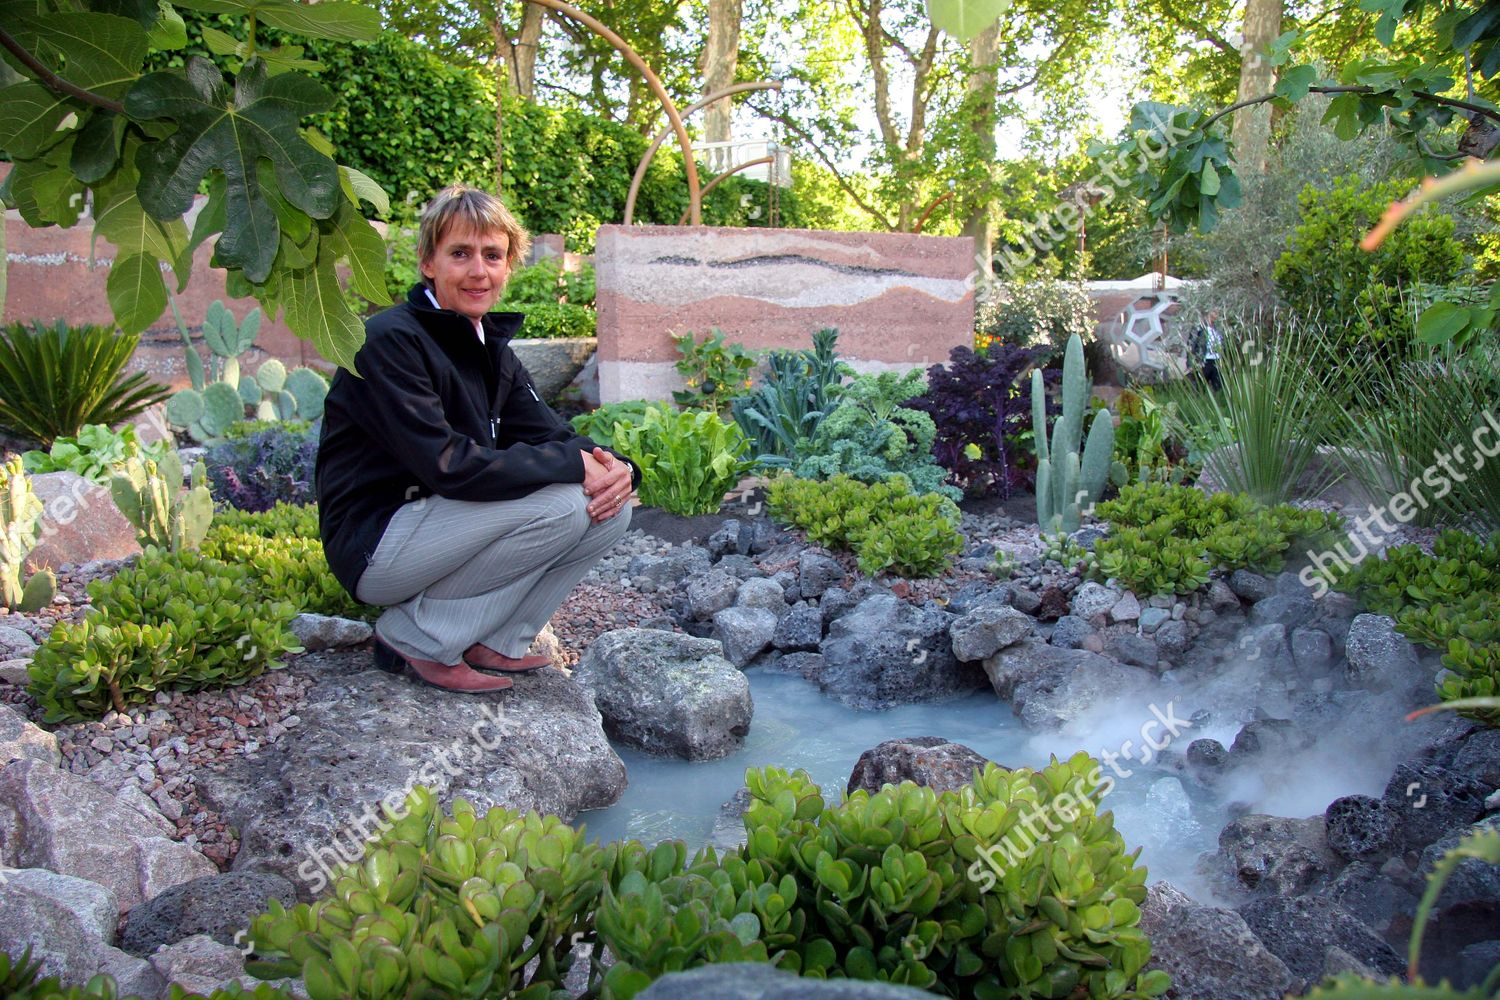 ... Sarah Eberley Wins Best In Show Garden At The Chelsea Flower  Show.....with The 600 Days With Bradstone Which Represents An Astronautu0027s Garden  On Mars.